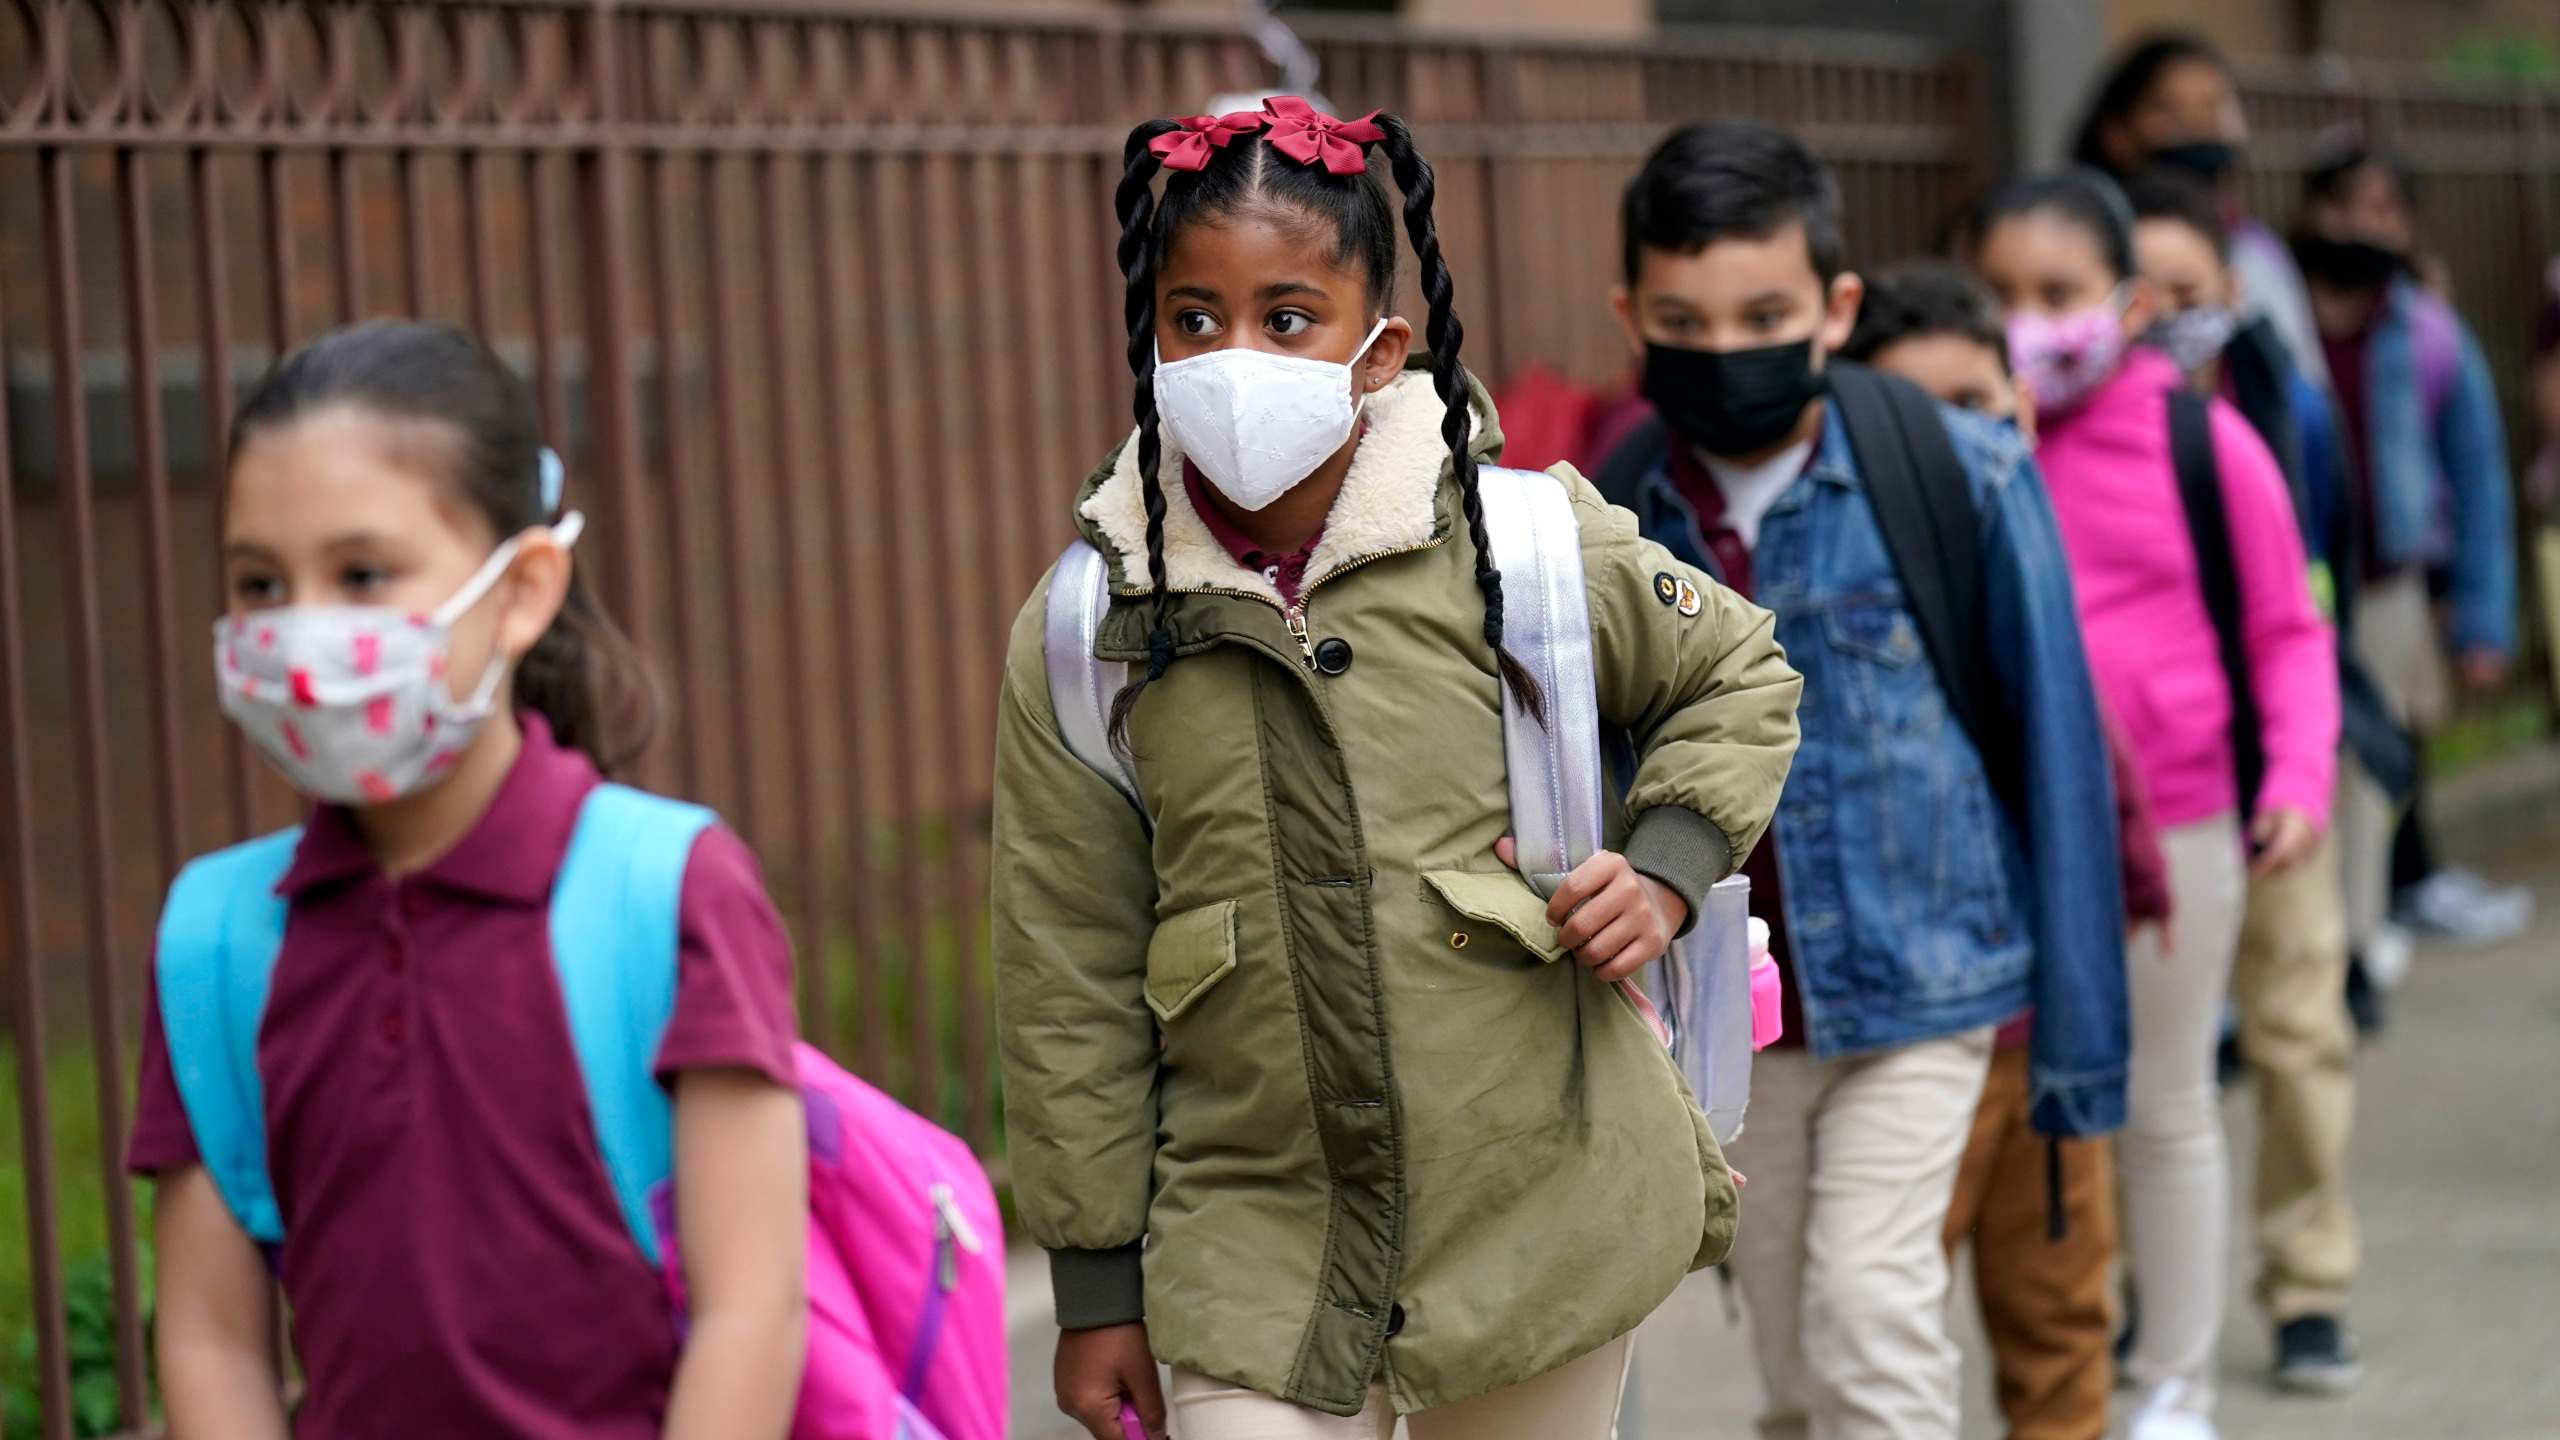 In this April 29, 2021, file photo, students line up to enter Christa McAuliffe School in Jersey City, N.J. Children are having their noses swabbed or saliva sampled at school to test for the coronavirus. As more children return to school buildings this spring, widely varying approaches have emerged on how and whether to test students and staff members for the virus. (AP Photo/Seth Wenig, File)